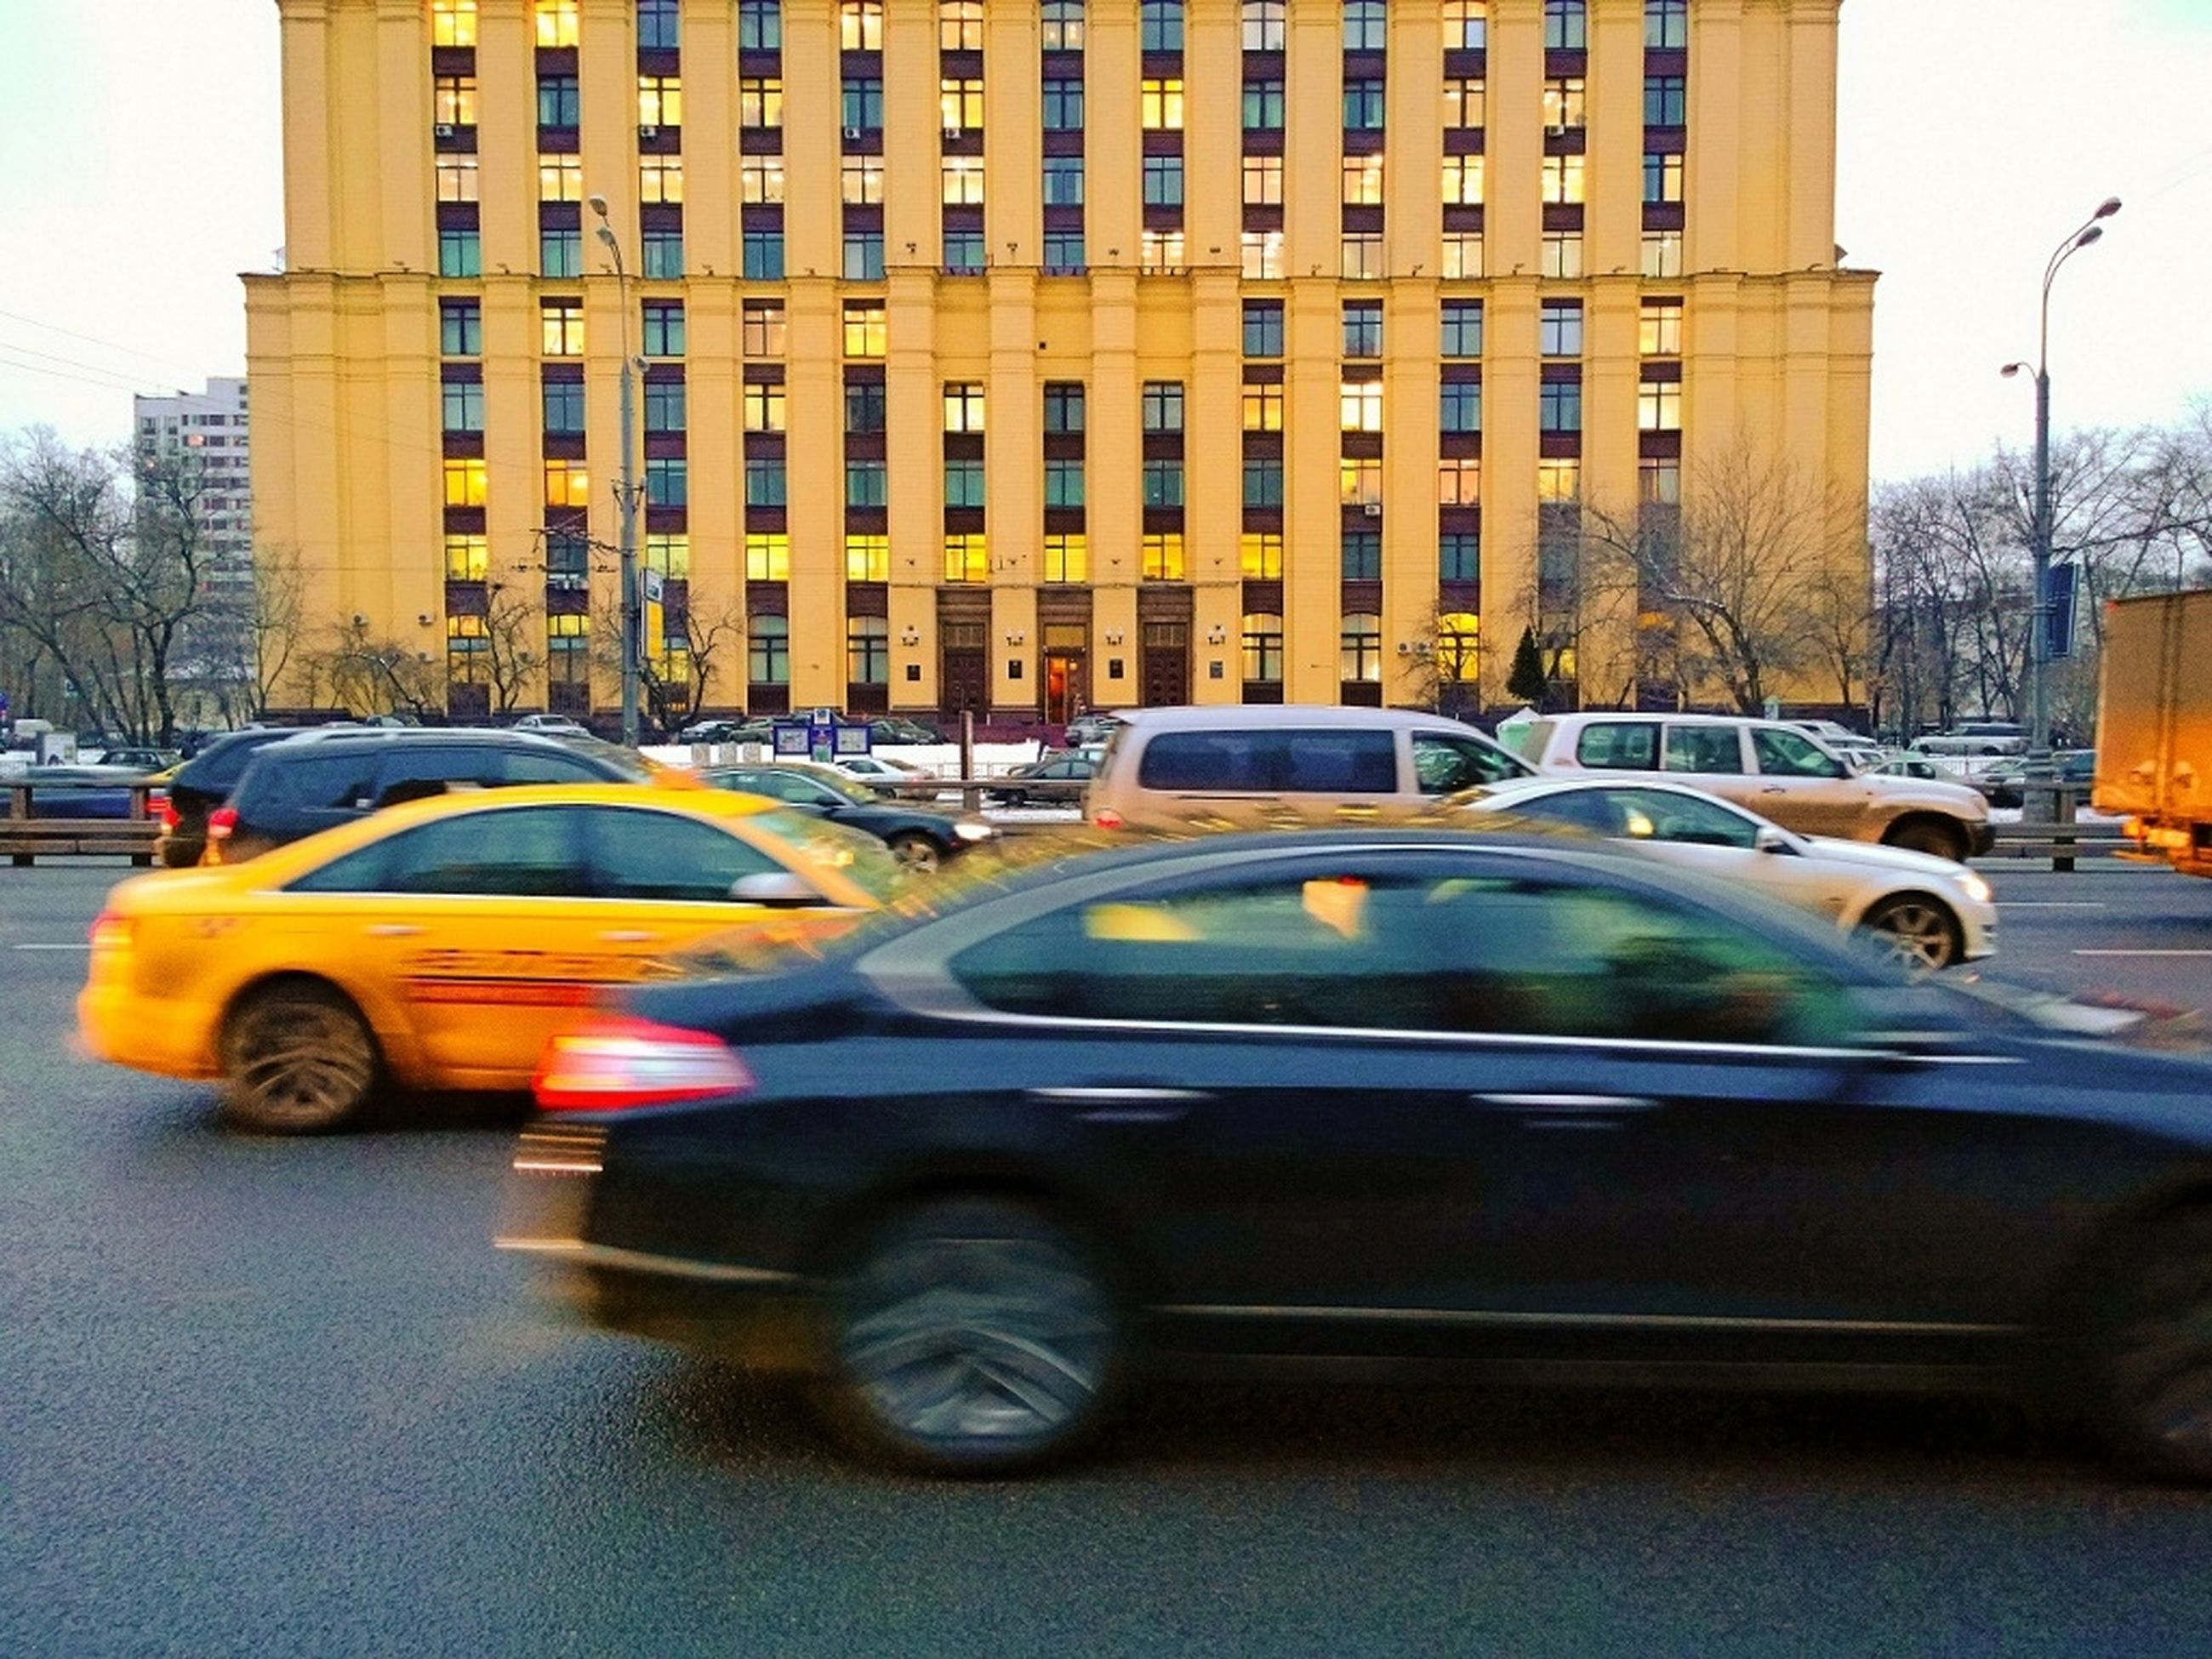 transportation, land vehicle, car, mode of transport, architecture, building exterior, built structure, city, street, road, city street, travel, traffic, city life, on the move, headlight, building, vehicle, stationary, bus